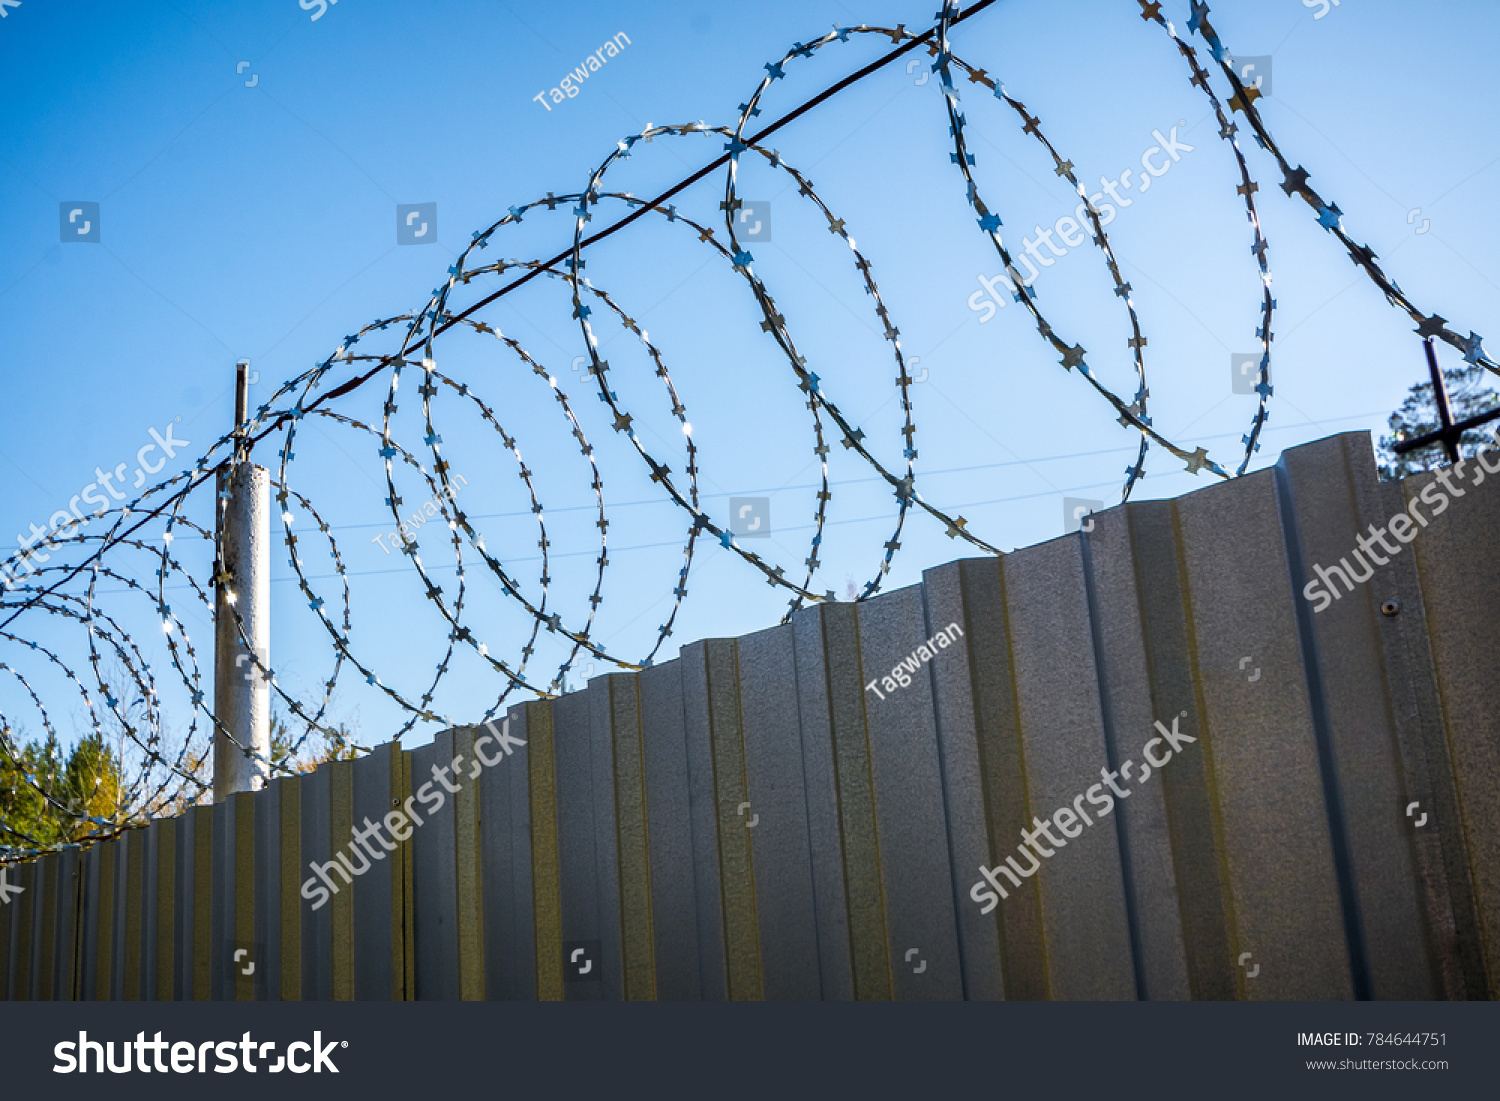 Barbed Wire On Fence Protect Prying Stock Photo (Royalty Free ...